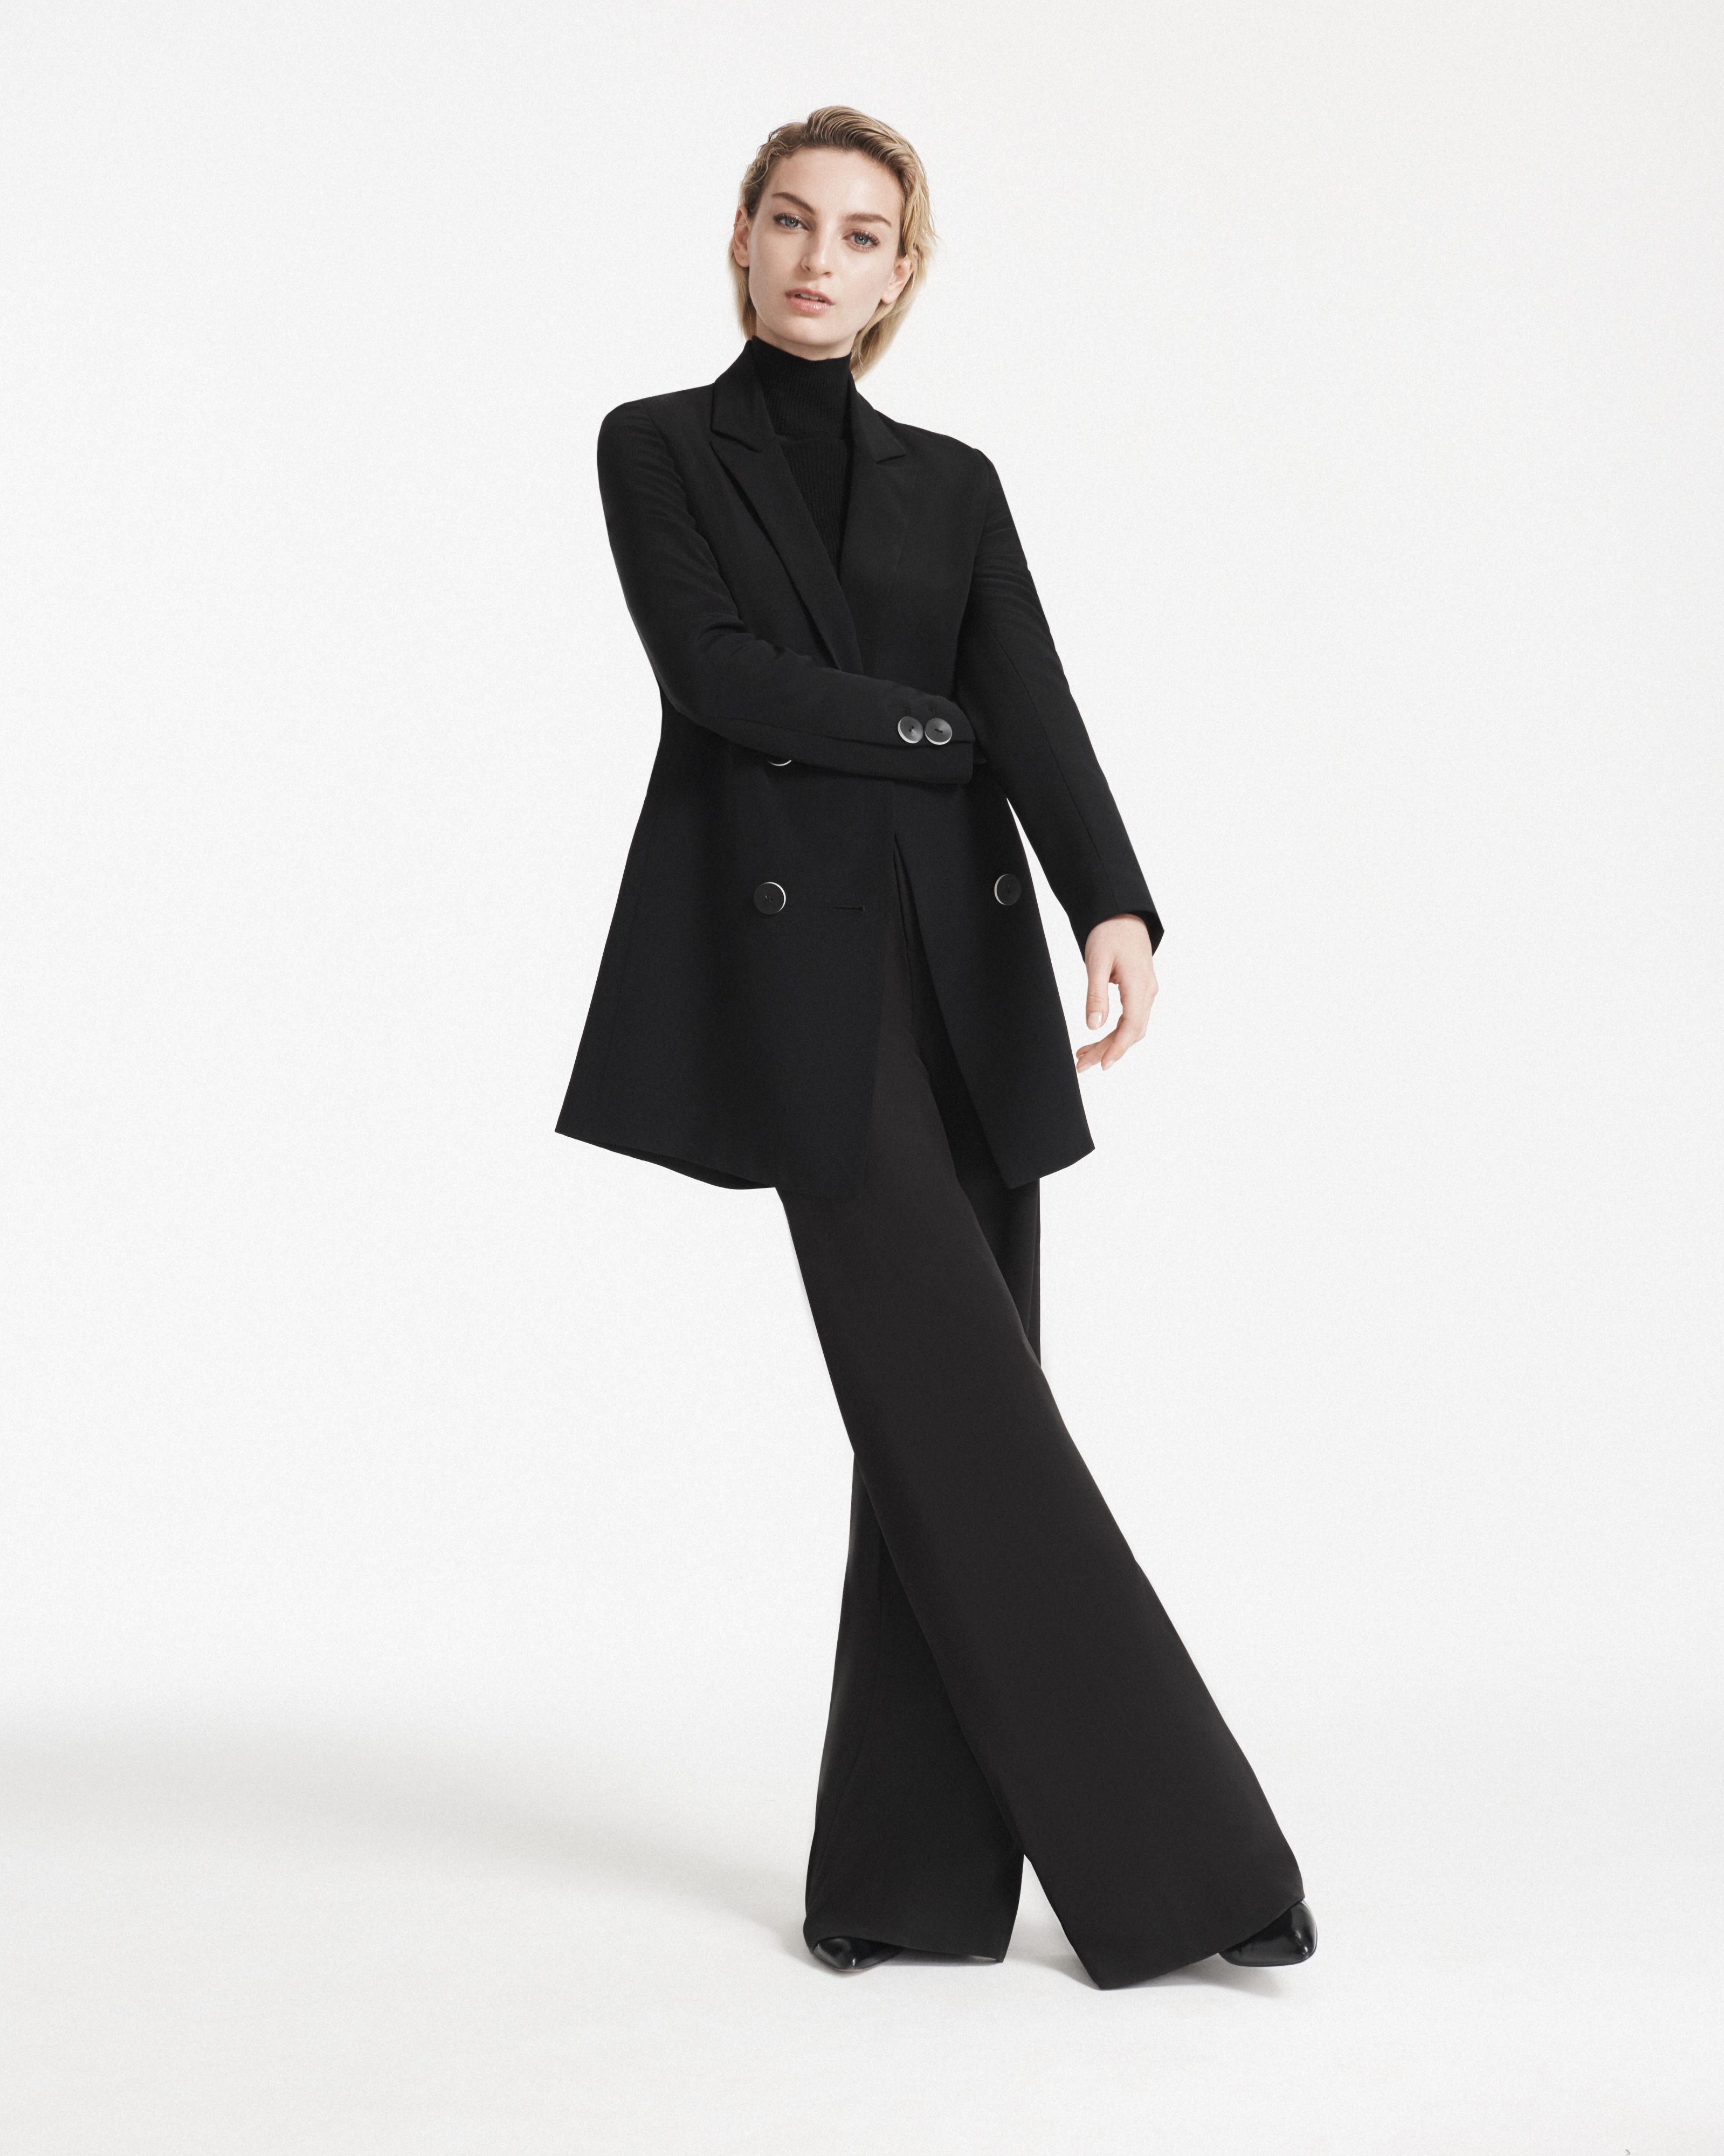 163c279ccd The Florence Blazer Dress layered over the Chiara Jumpsuit and Beatrice  Turtleneck